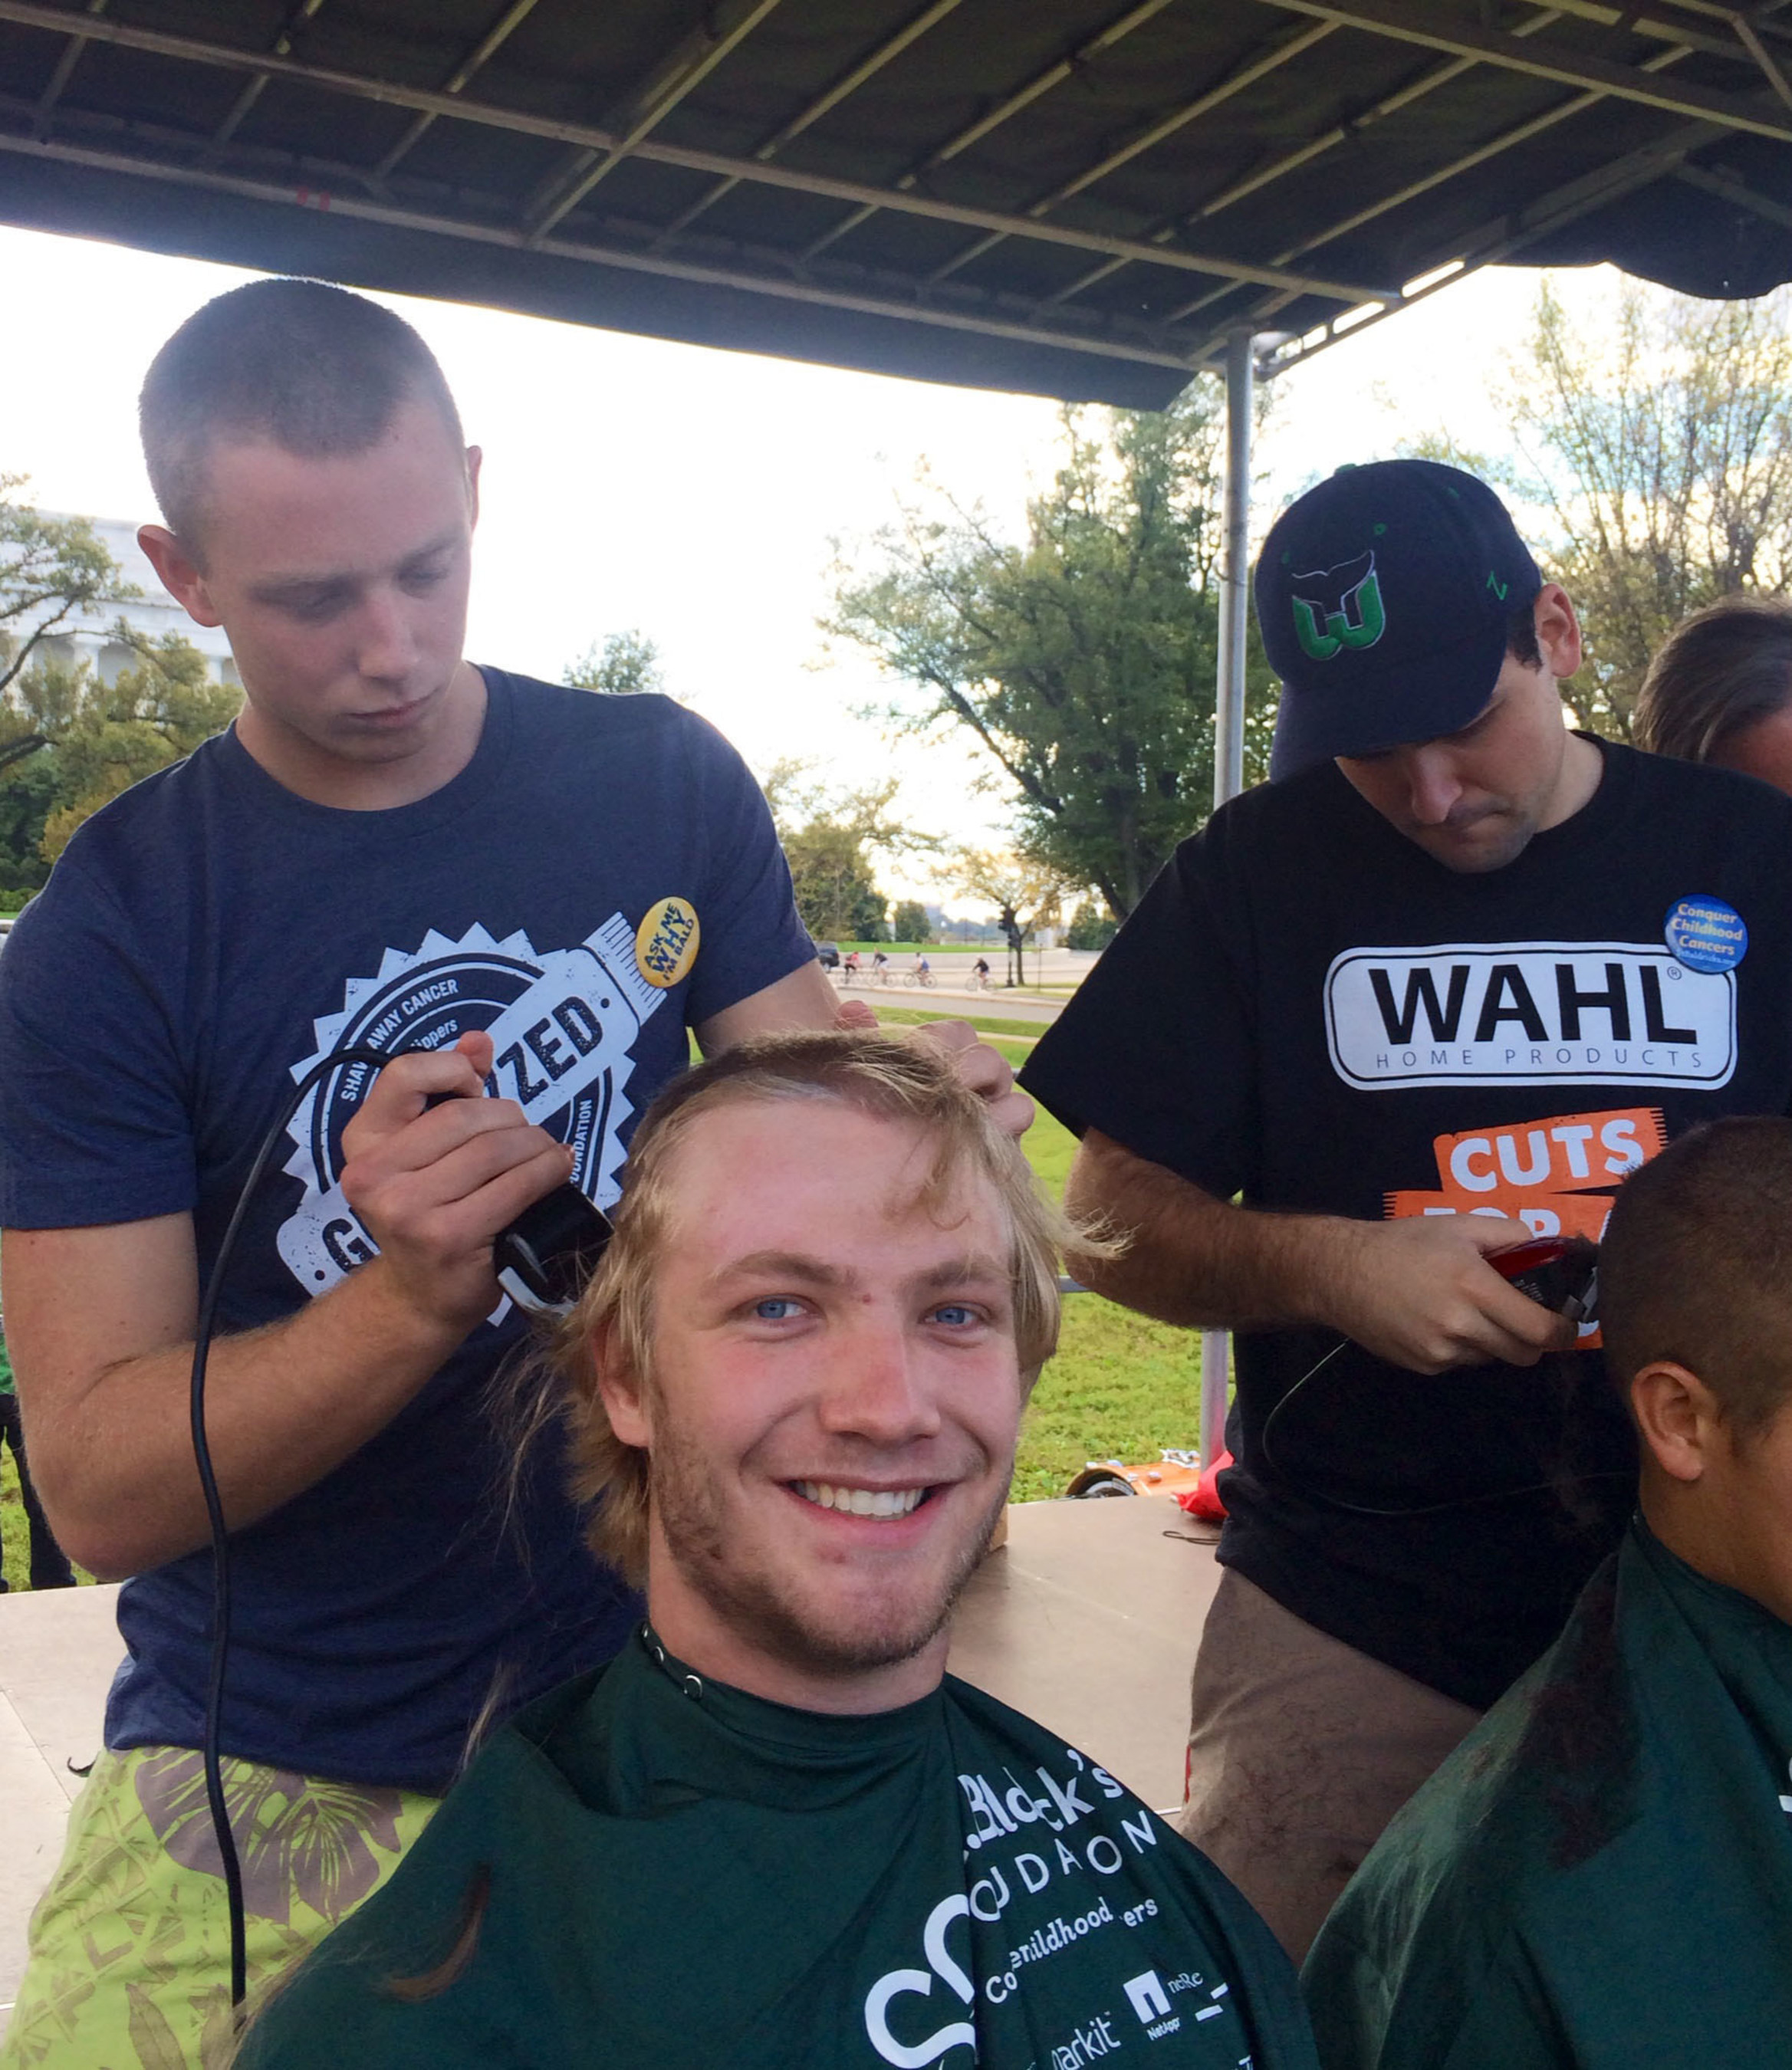 Washington DC students have their heads shaved at a Wahl Cuts for a Cause event to raise money for childhood cancer research.